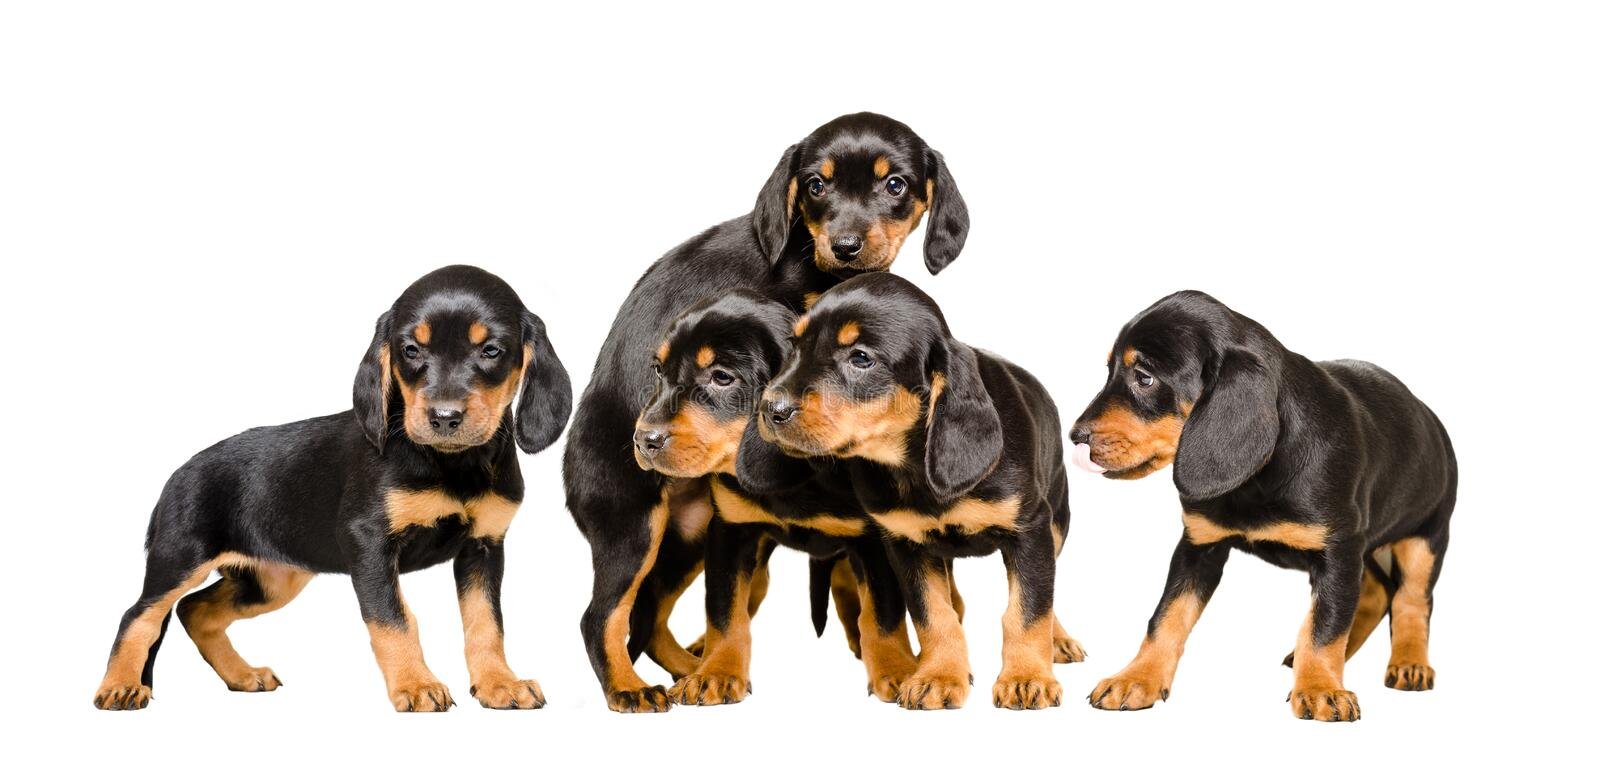 Five cute puppy Slovakian Hund together royalty free stock photography